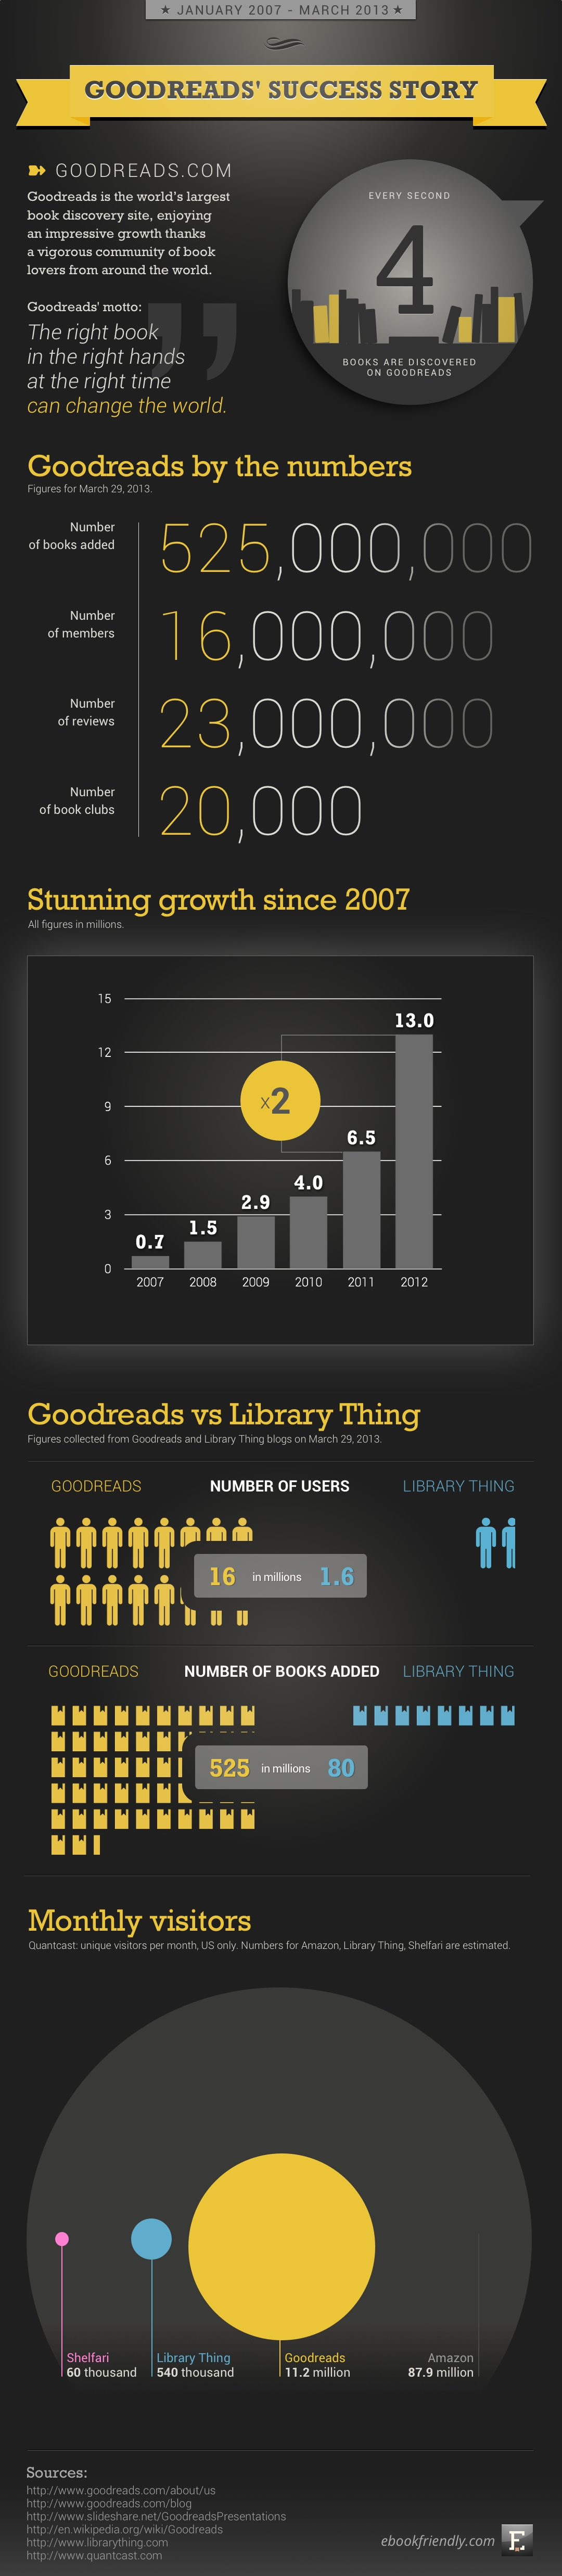 Goodreads' success story (infographic) | Ebook Friendly